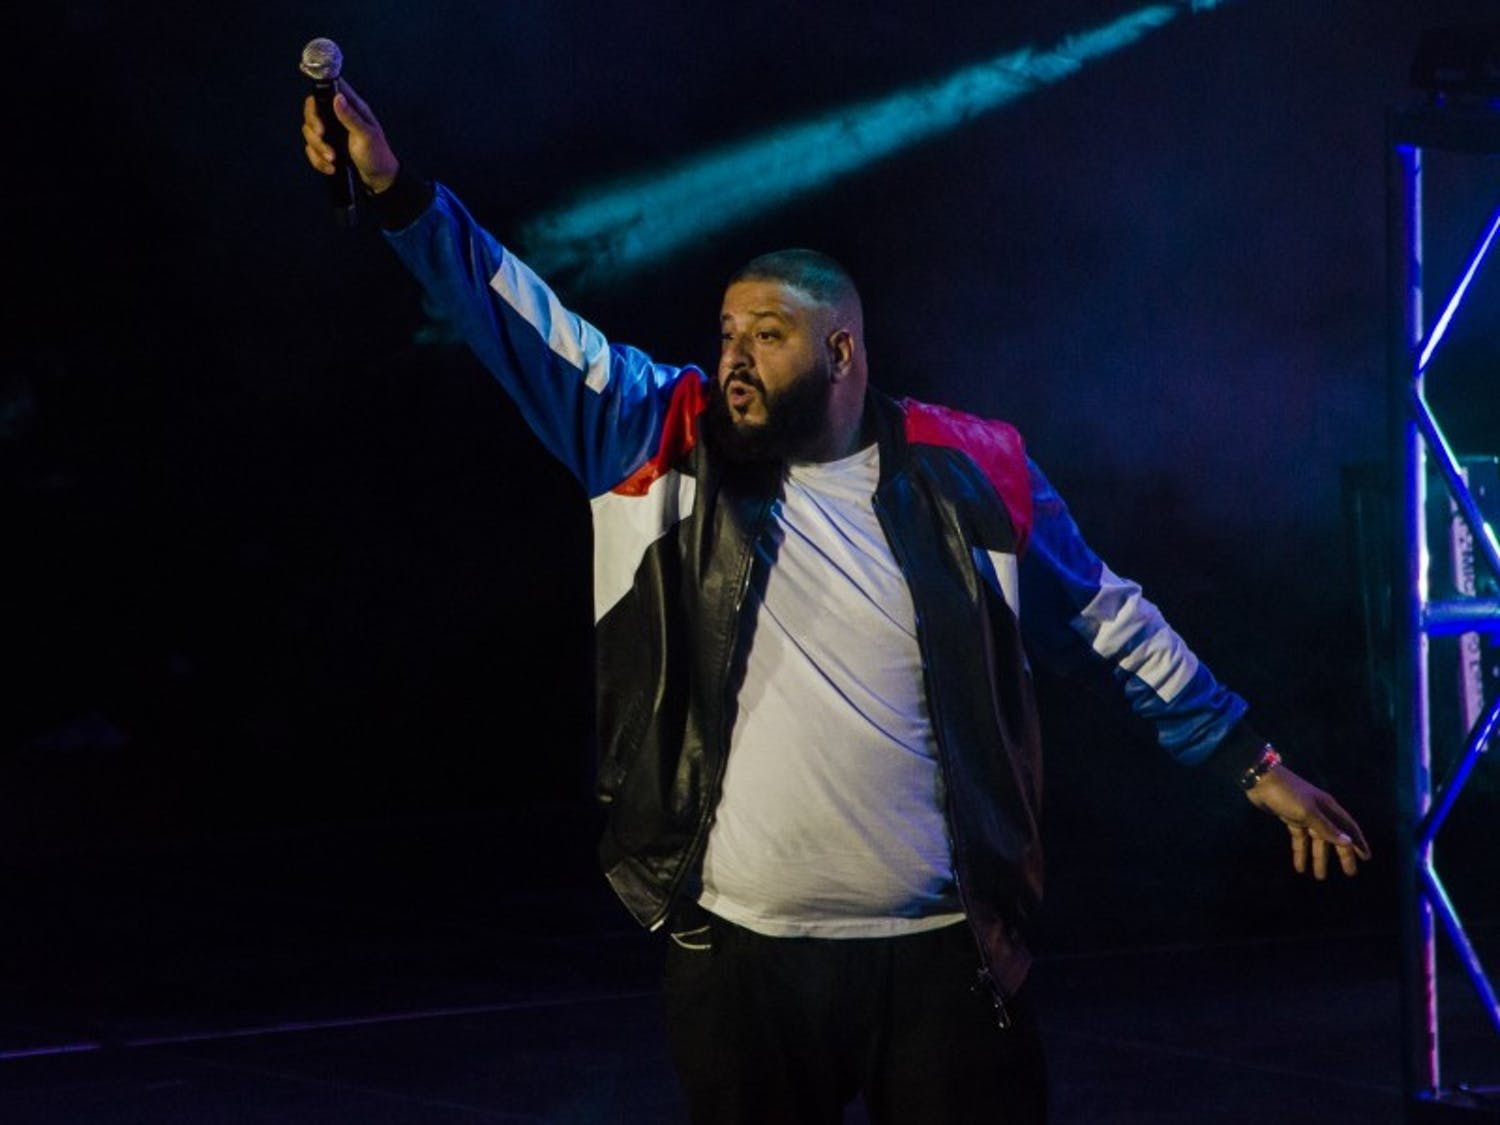 DJ Khaled's performance at the Kohl Center on Monday evening didn't live up to campus expectations.